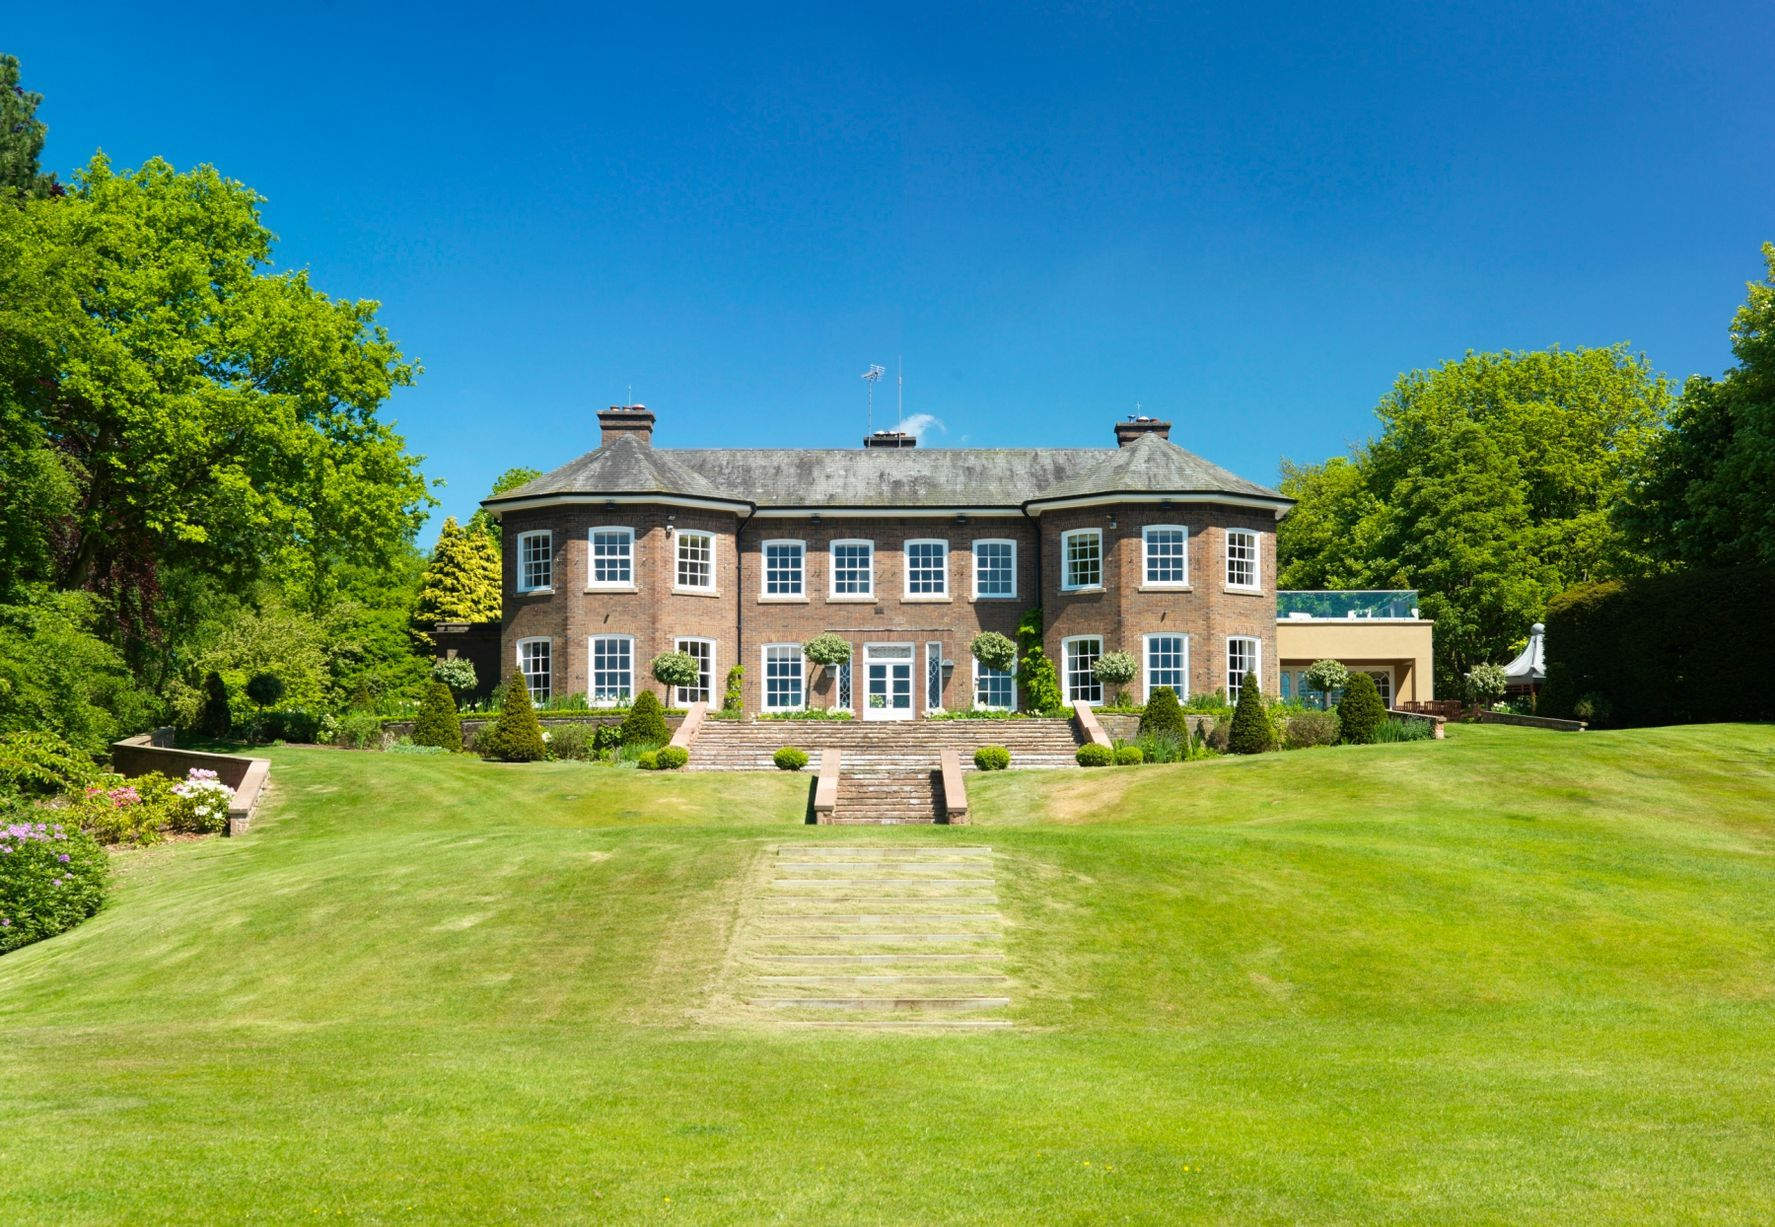 Get married in gary barlowus old mansion delamere manor opens for